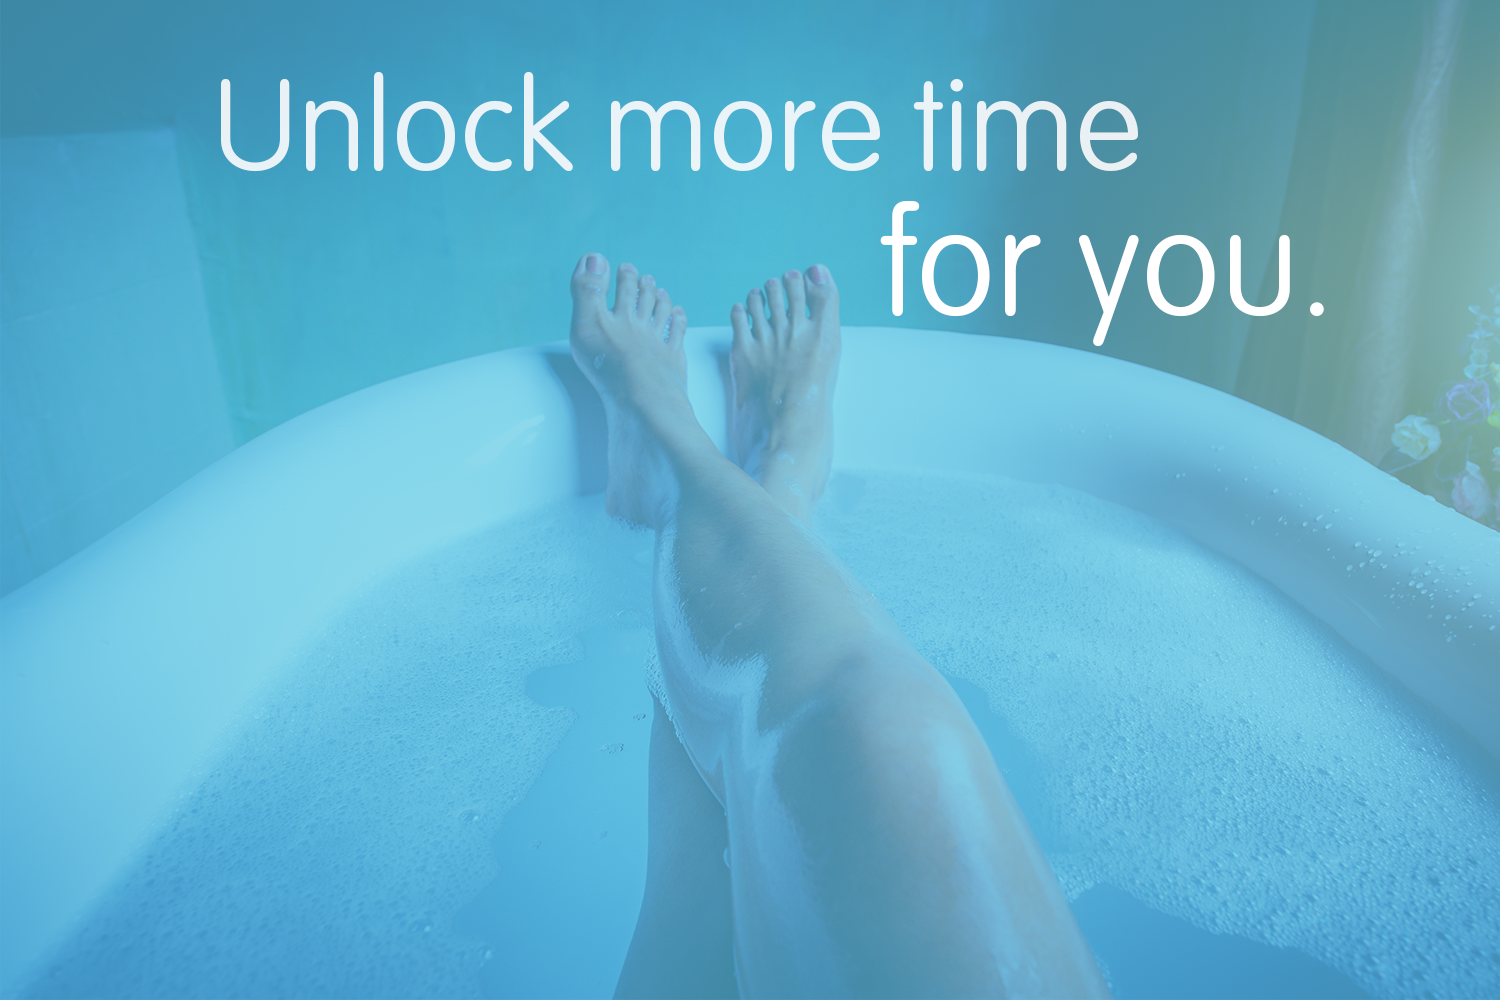 Unlock a little more time for you